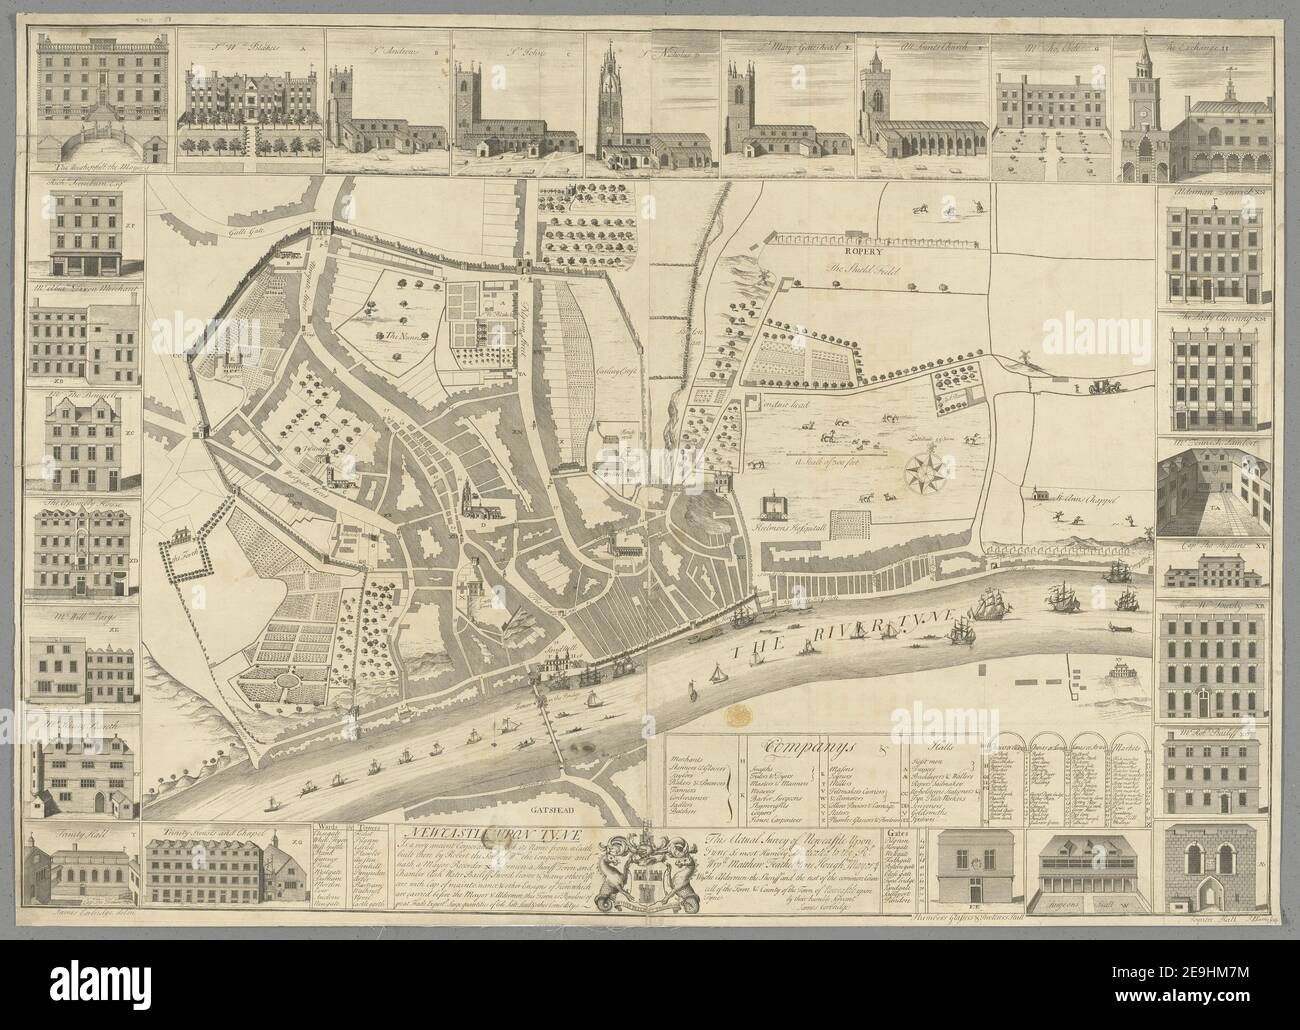 Map Of Newcastle Upon Tyne High Resolution Stock Photography and ...